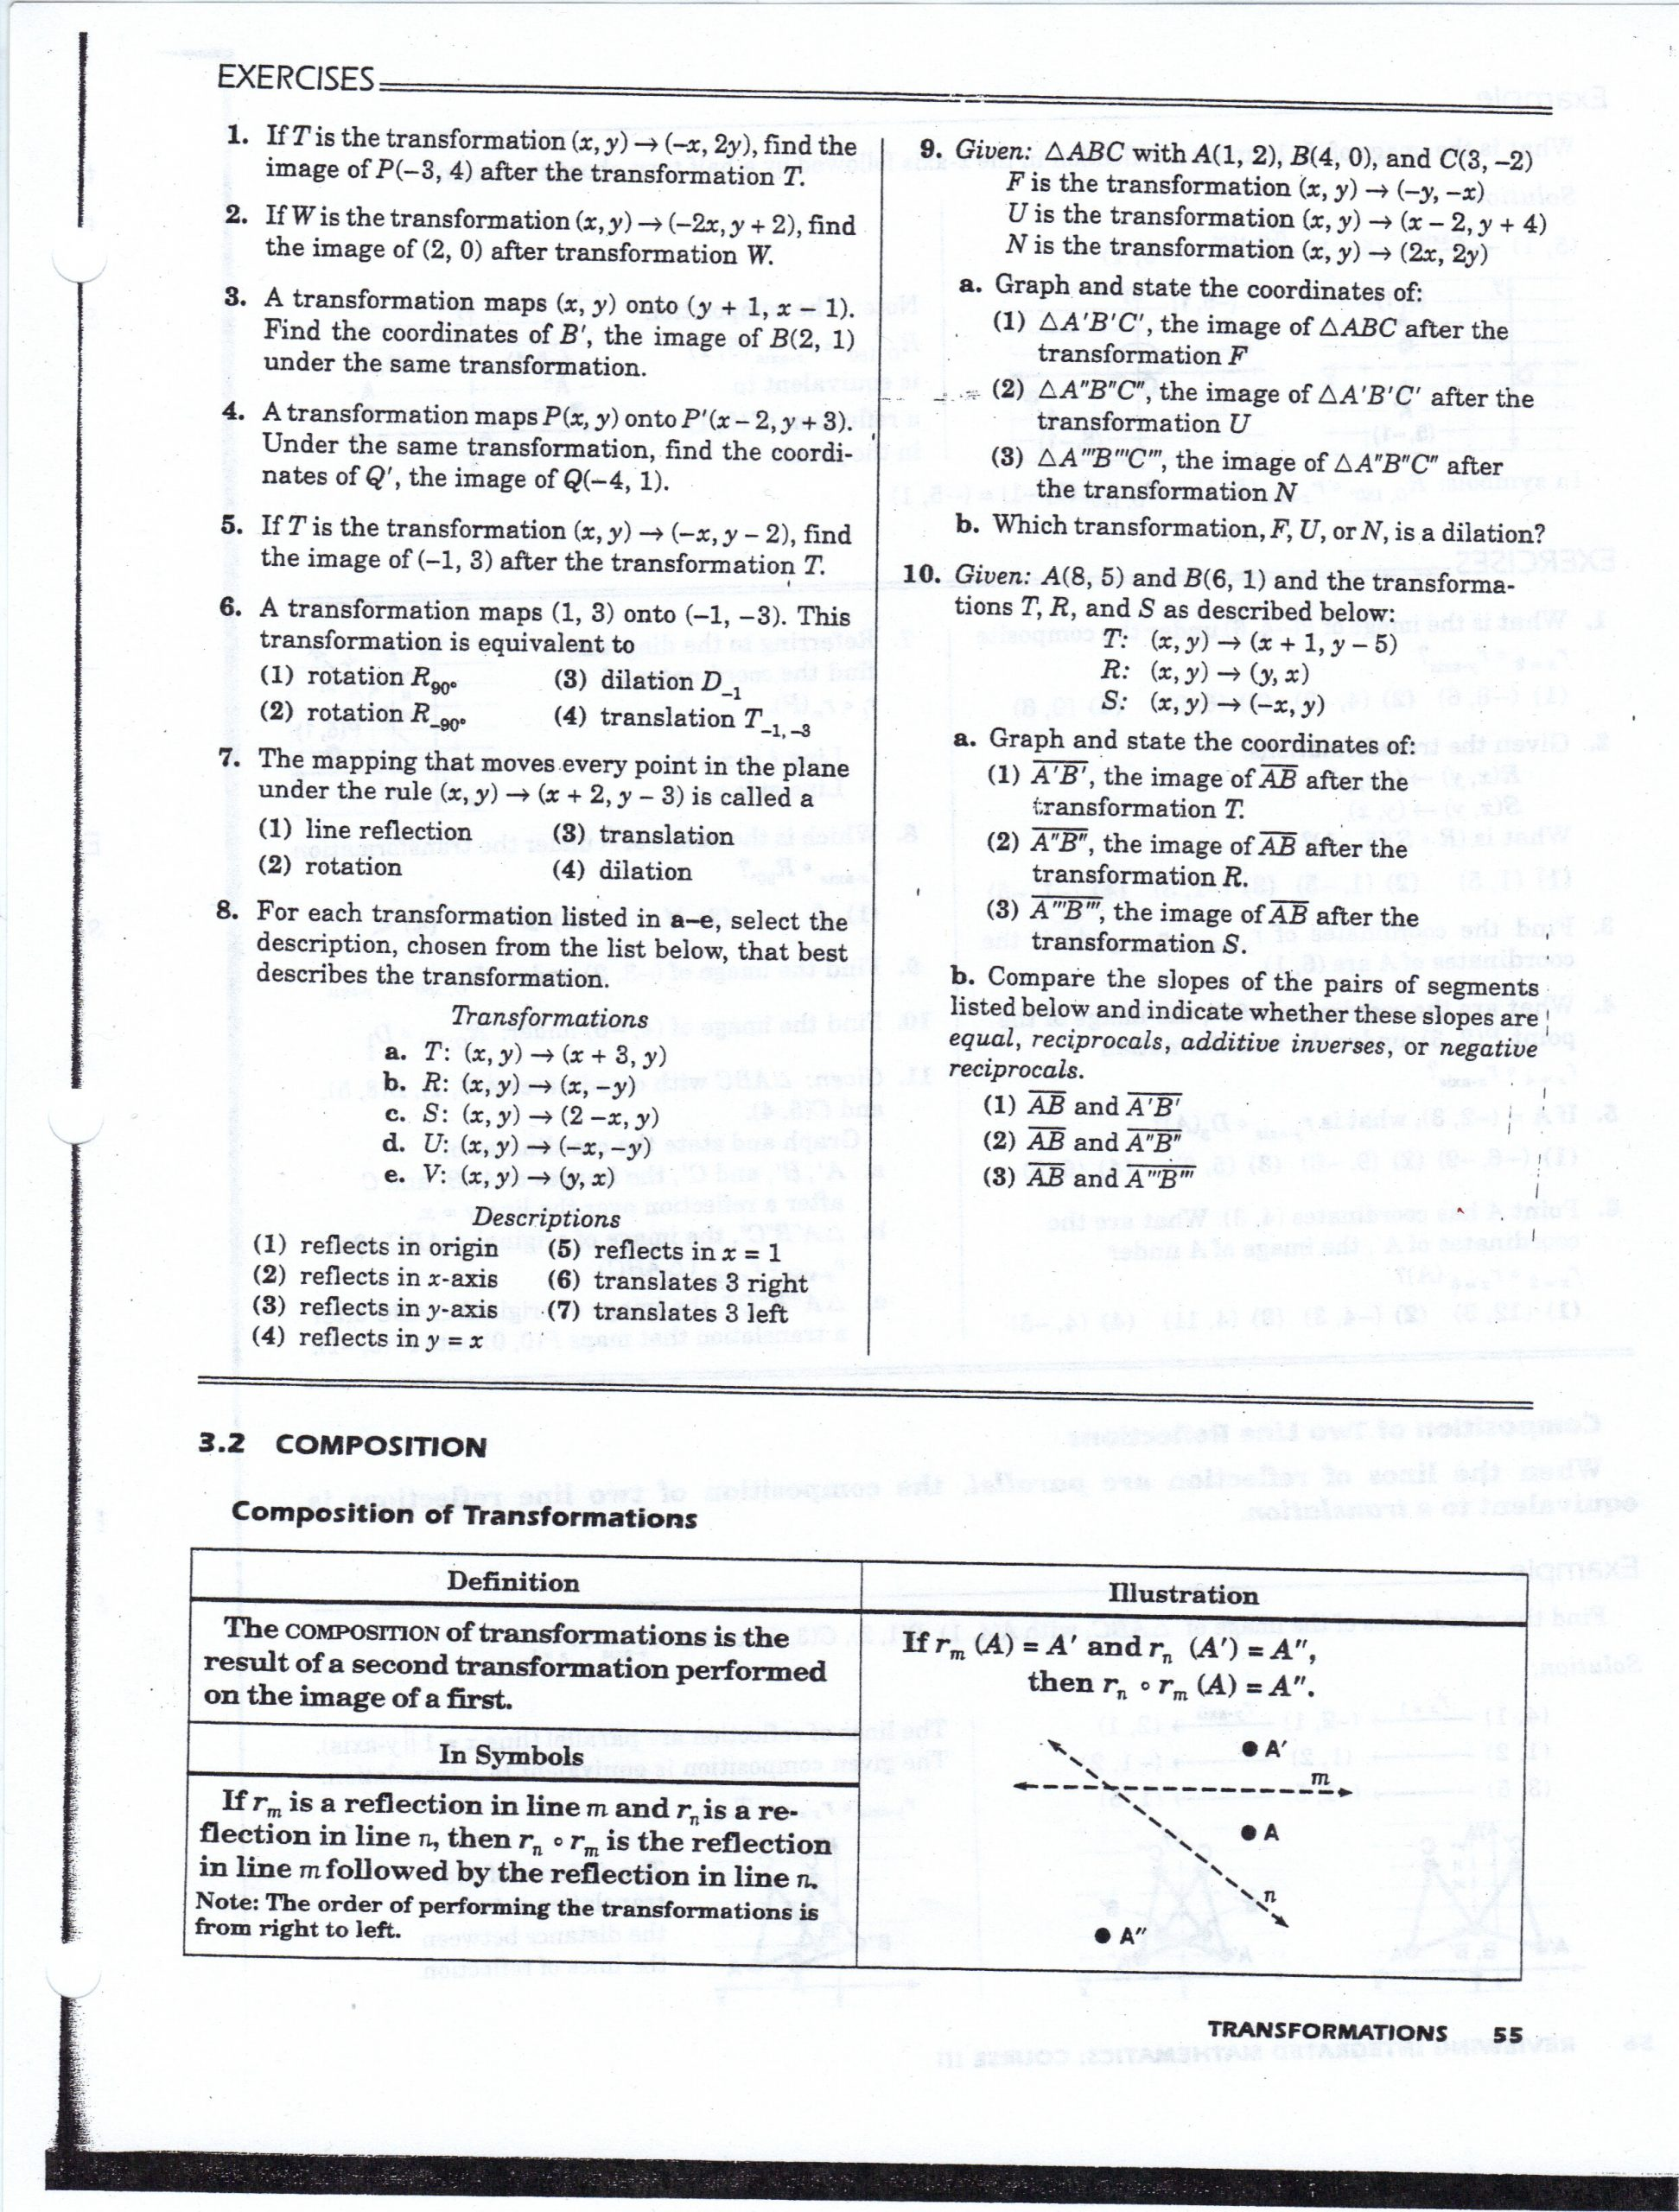 Geometry Transformation Composition Worksheet Answers Geometry Worksheets Mhshs Wiki